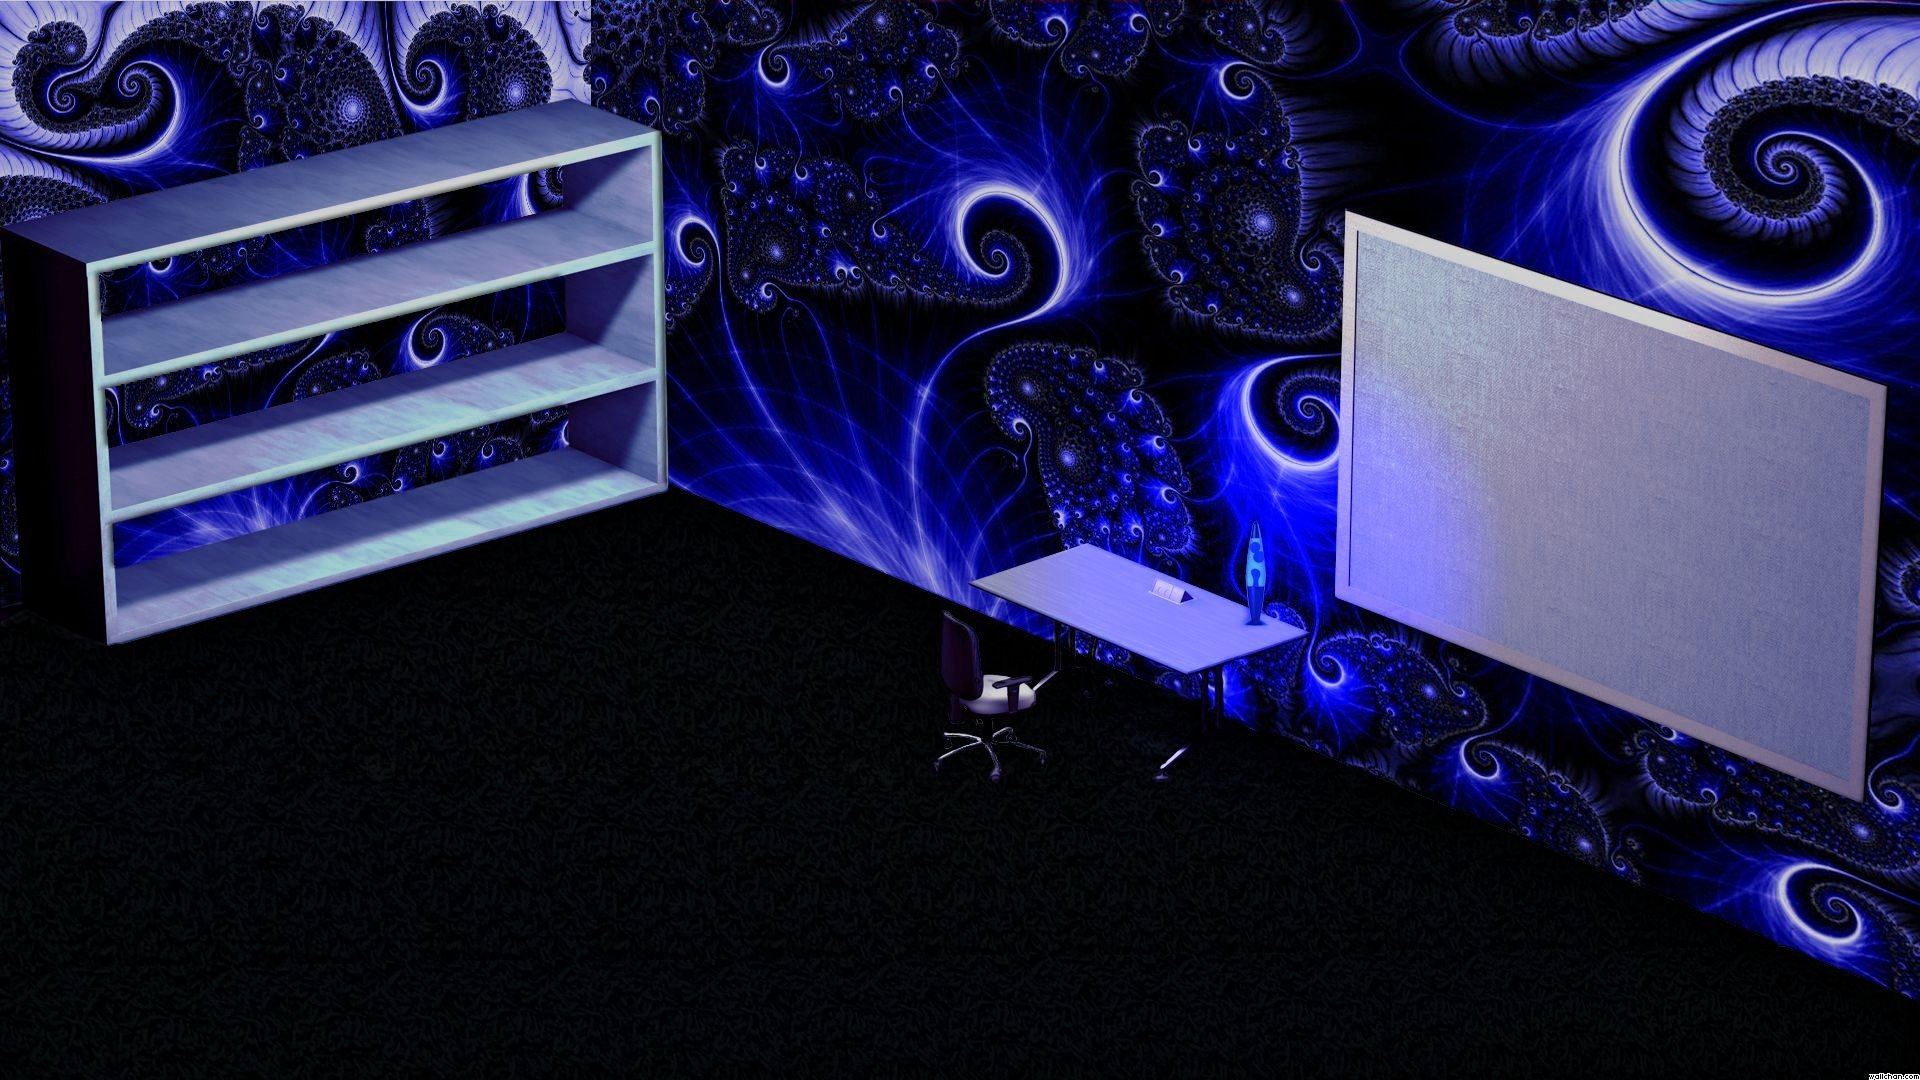 3d Bookcase Wallpaper The Office Desktop Wallpaper 183 ① Wallpapertag